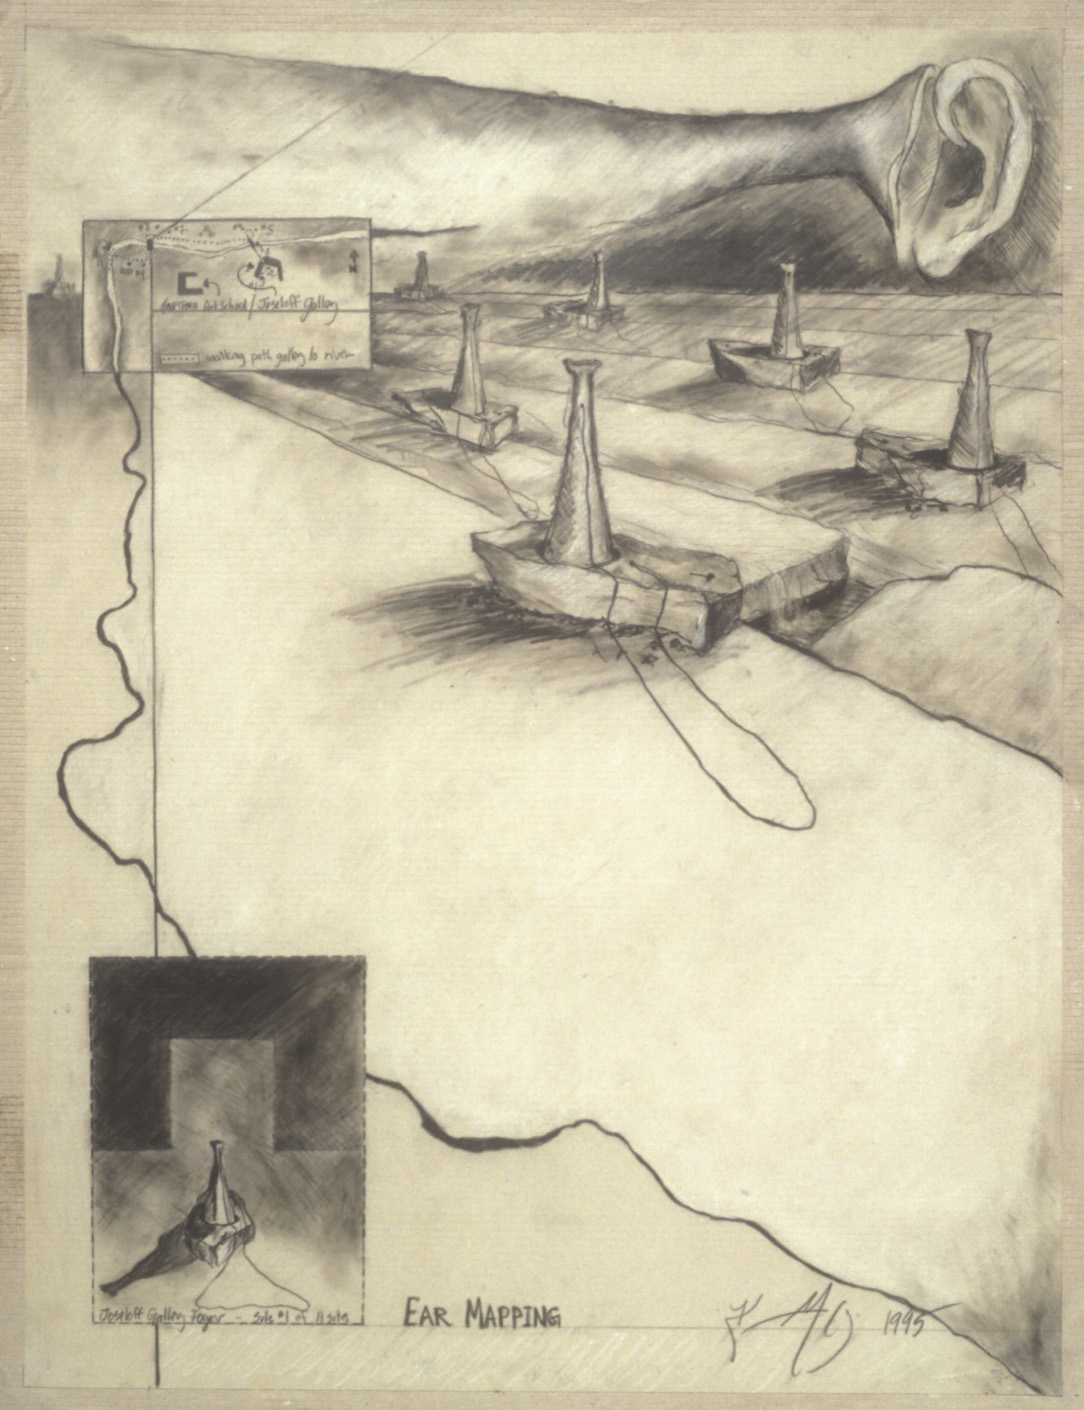 """Ear Mapping  Project for """"The Edge of Town"""", Joseloff Gallery, Hartford Art School, University of Hartford, CT., 1995  Charcoal and mixed media, 22 x 30"""" ."""